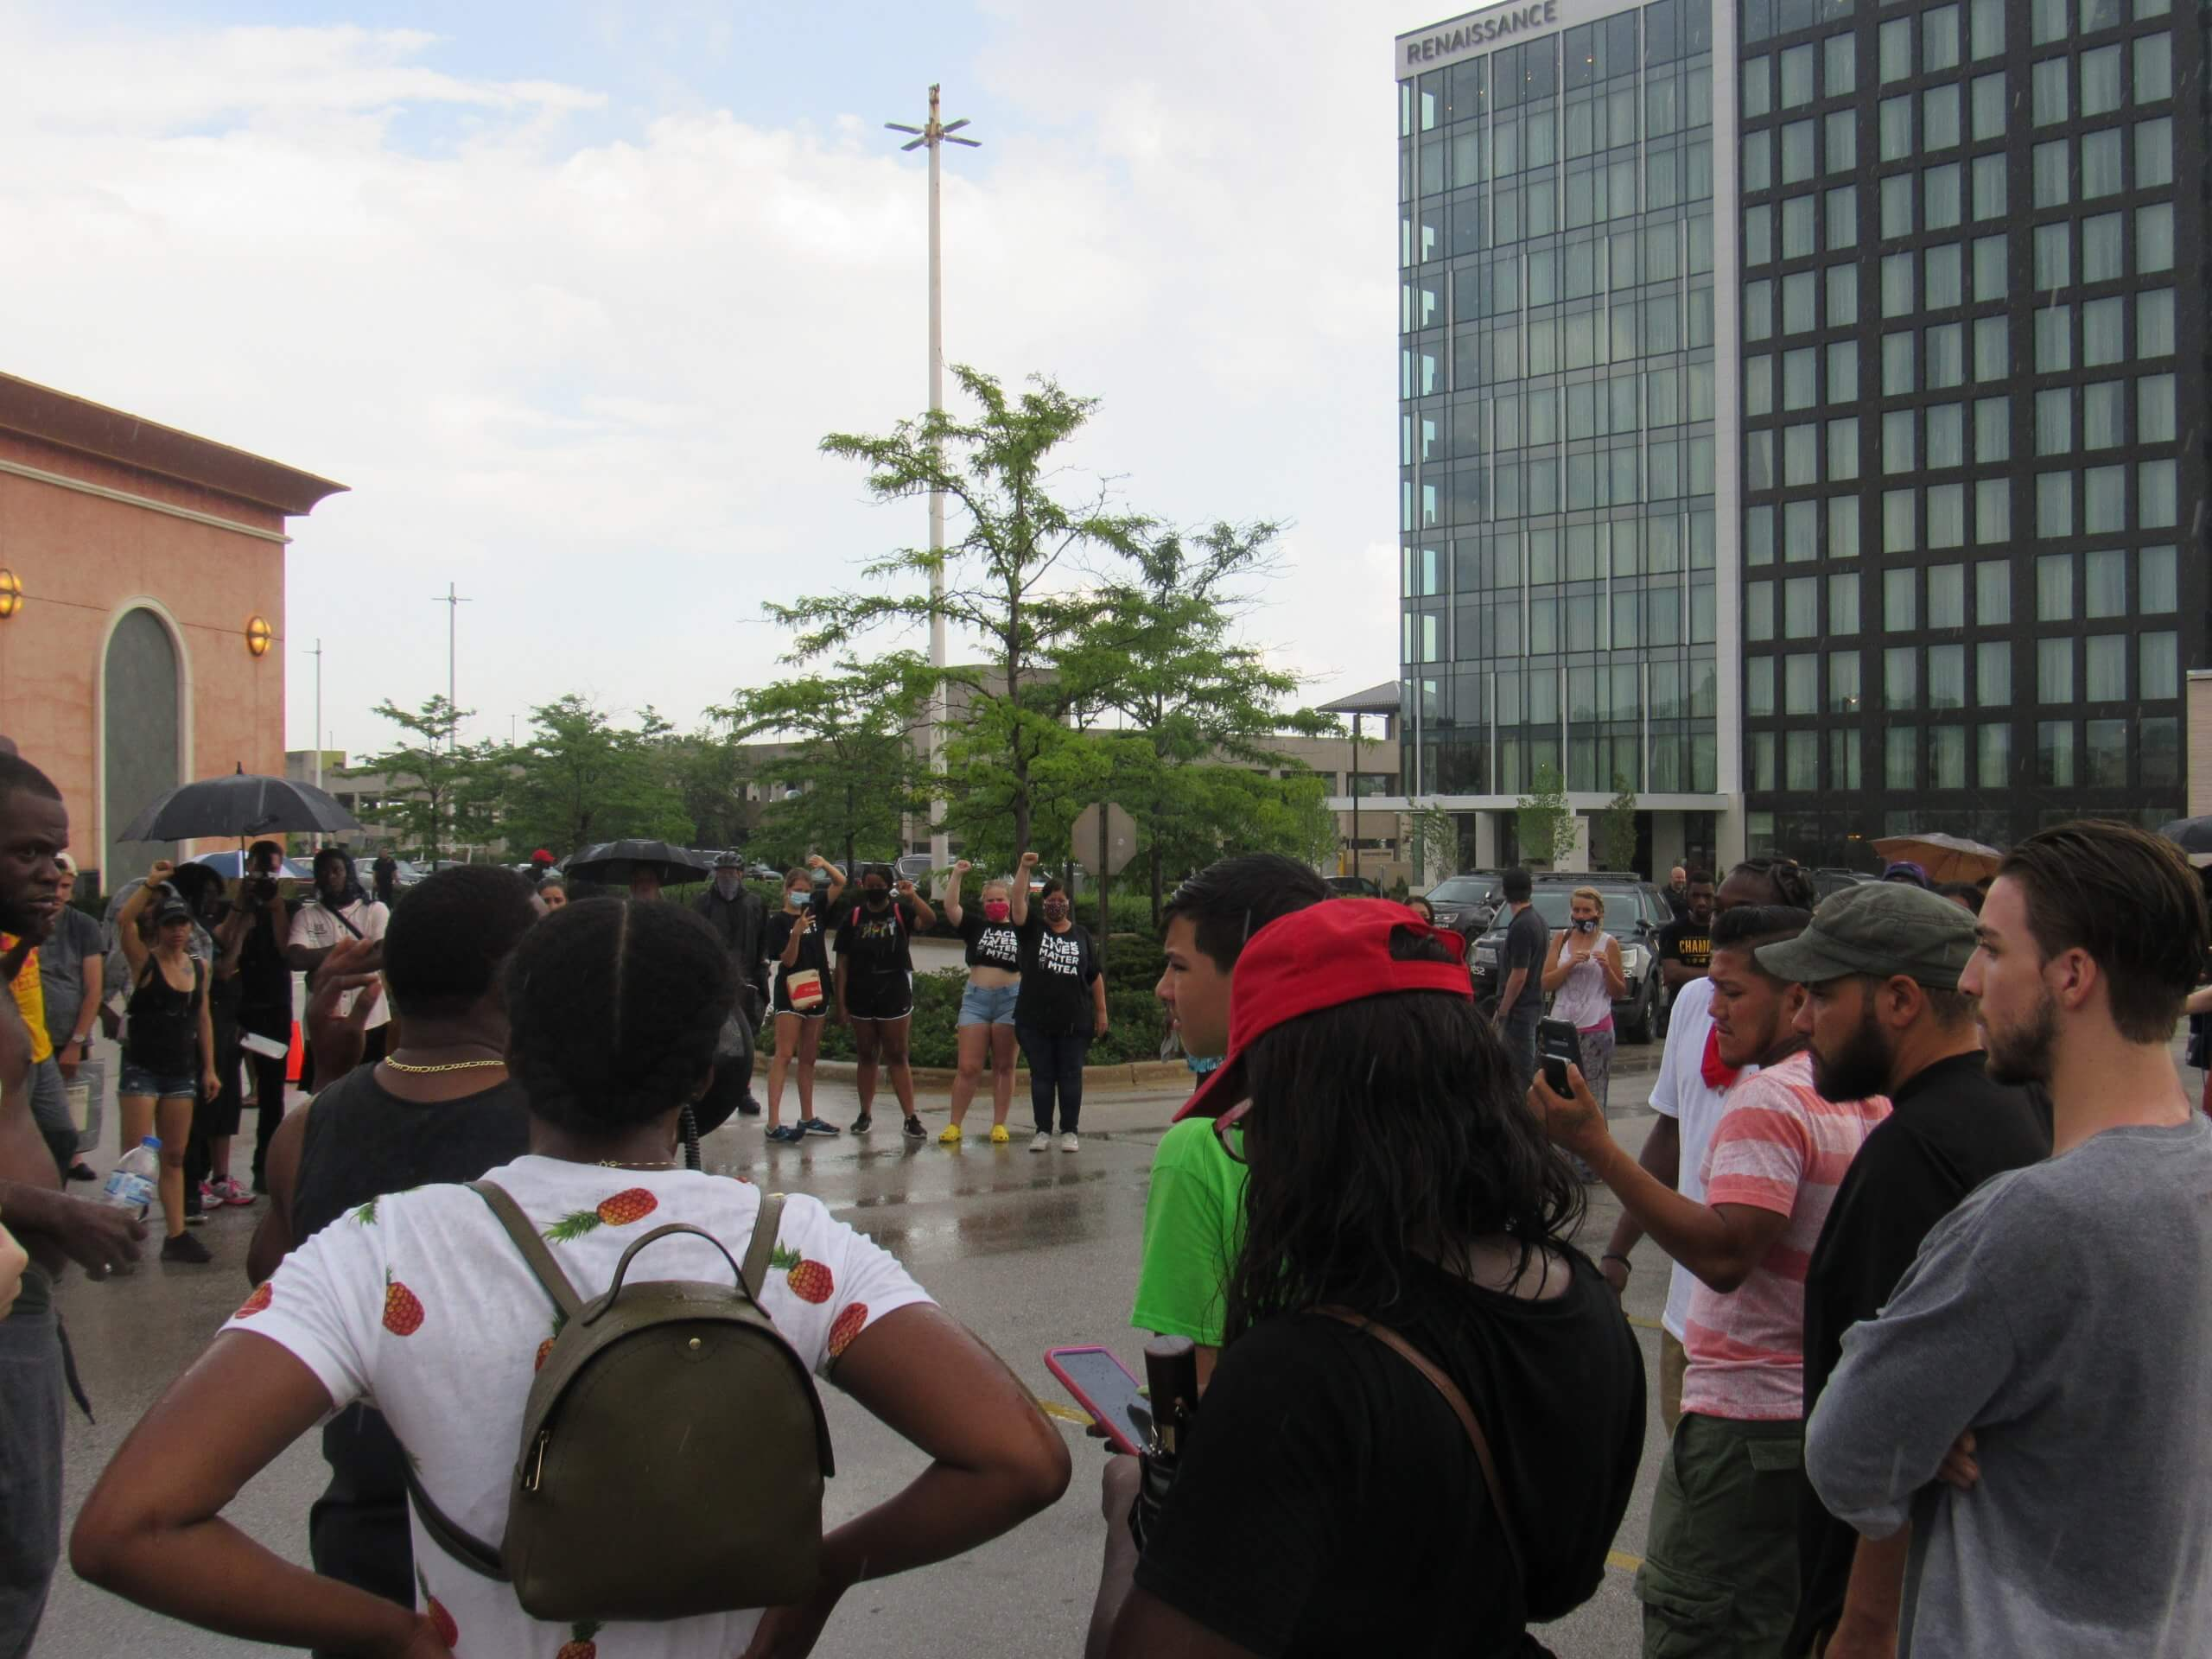 Protesters gather as the scene cools down and the police begin to leave. (Photo by Isiah Holmes)